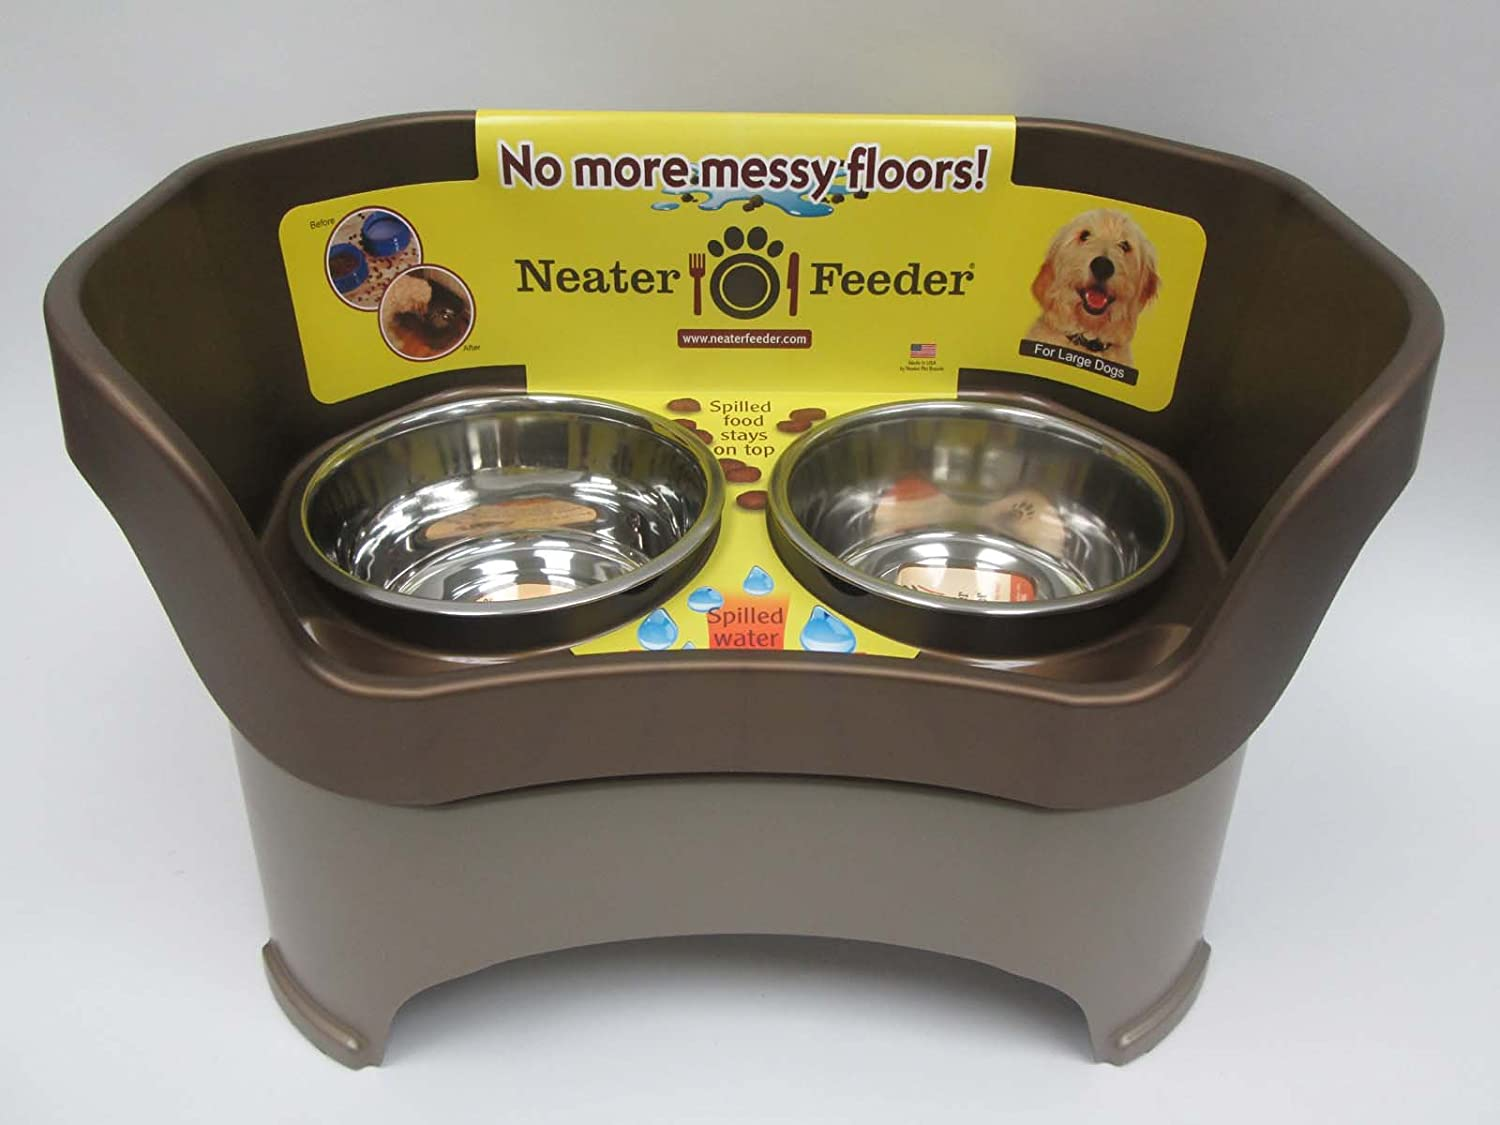 Save money on these clearance dog bowls and feeders at exceptional prices. Don't miss this opportunity to get a brand new dog feeder or waterer at low, discount prices.